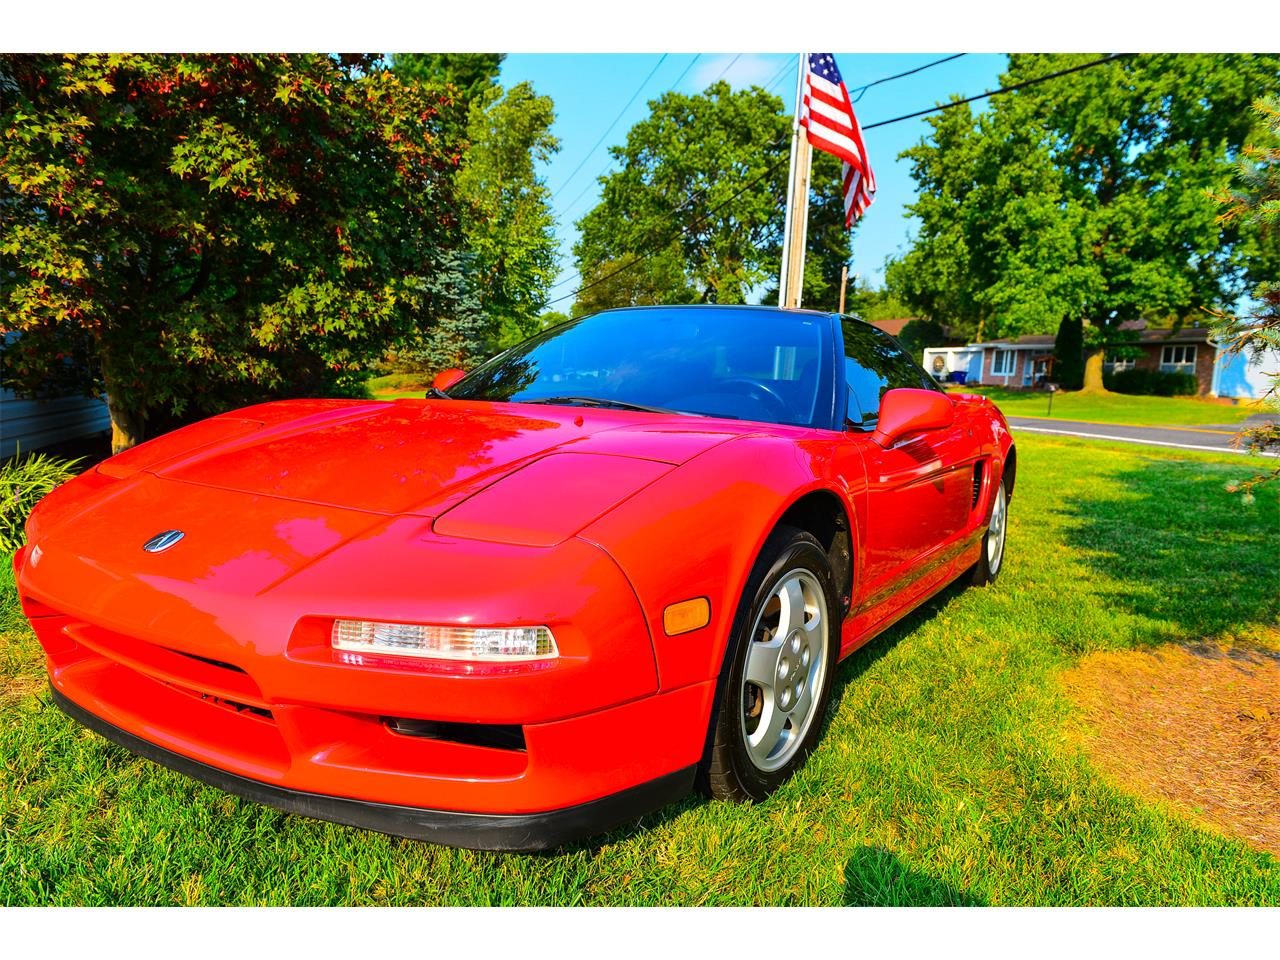 Large Picture of 1993 Acura NSX located in St. Louis Missouri - $55,500.00 Offered by a Private Seller - M4DD